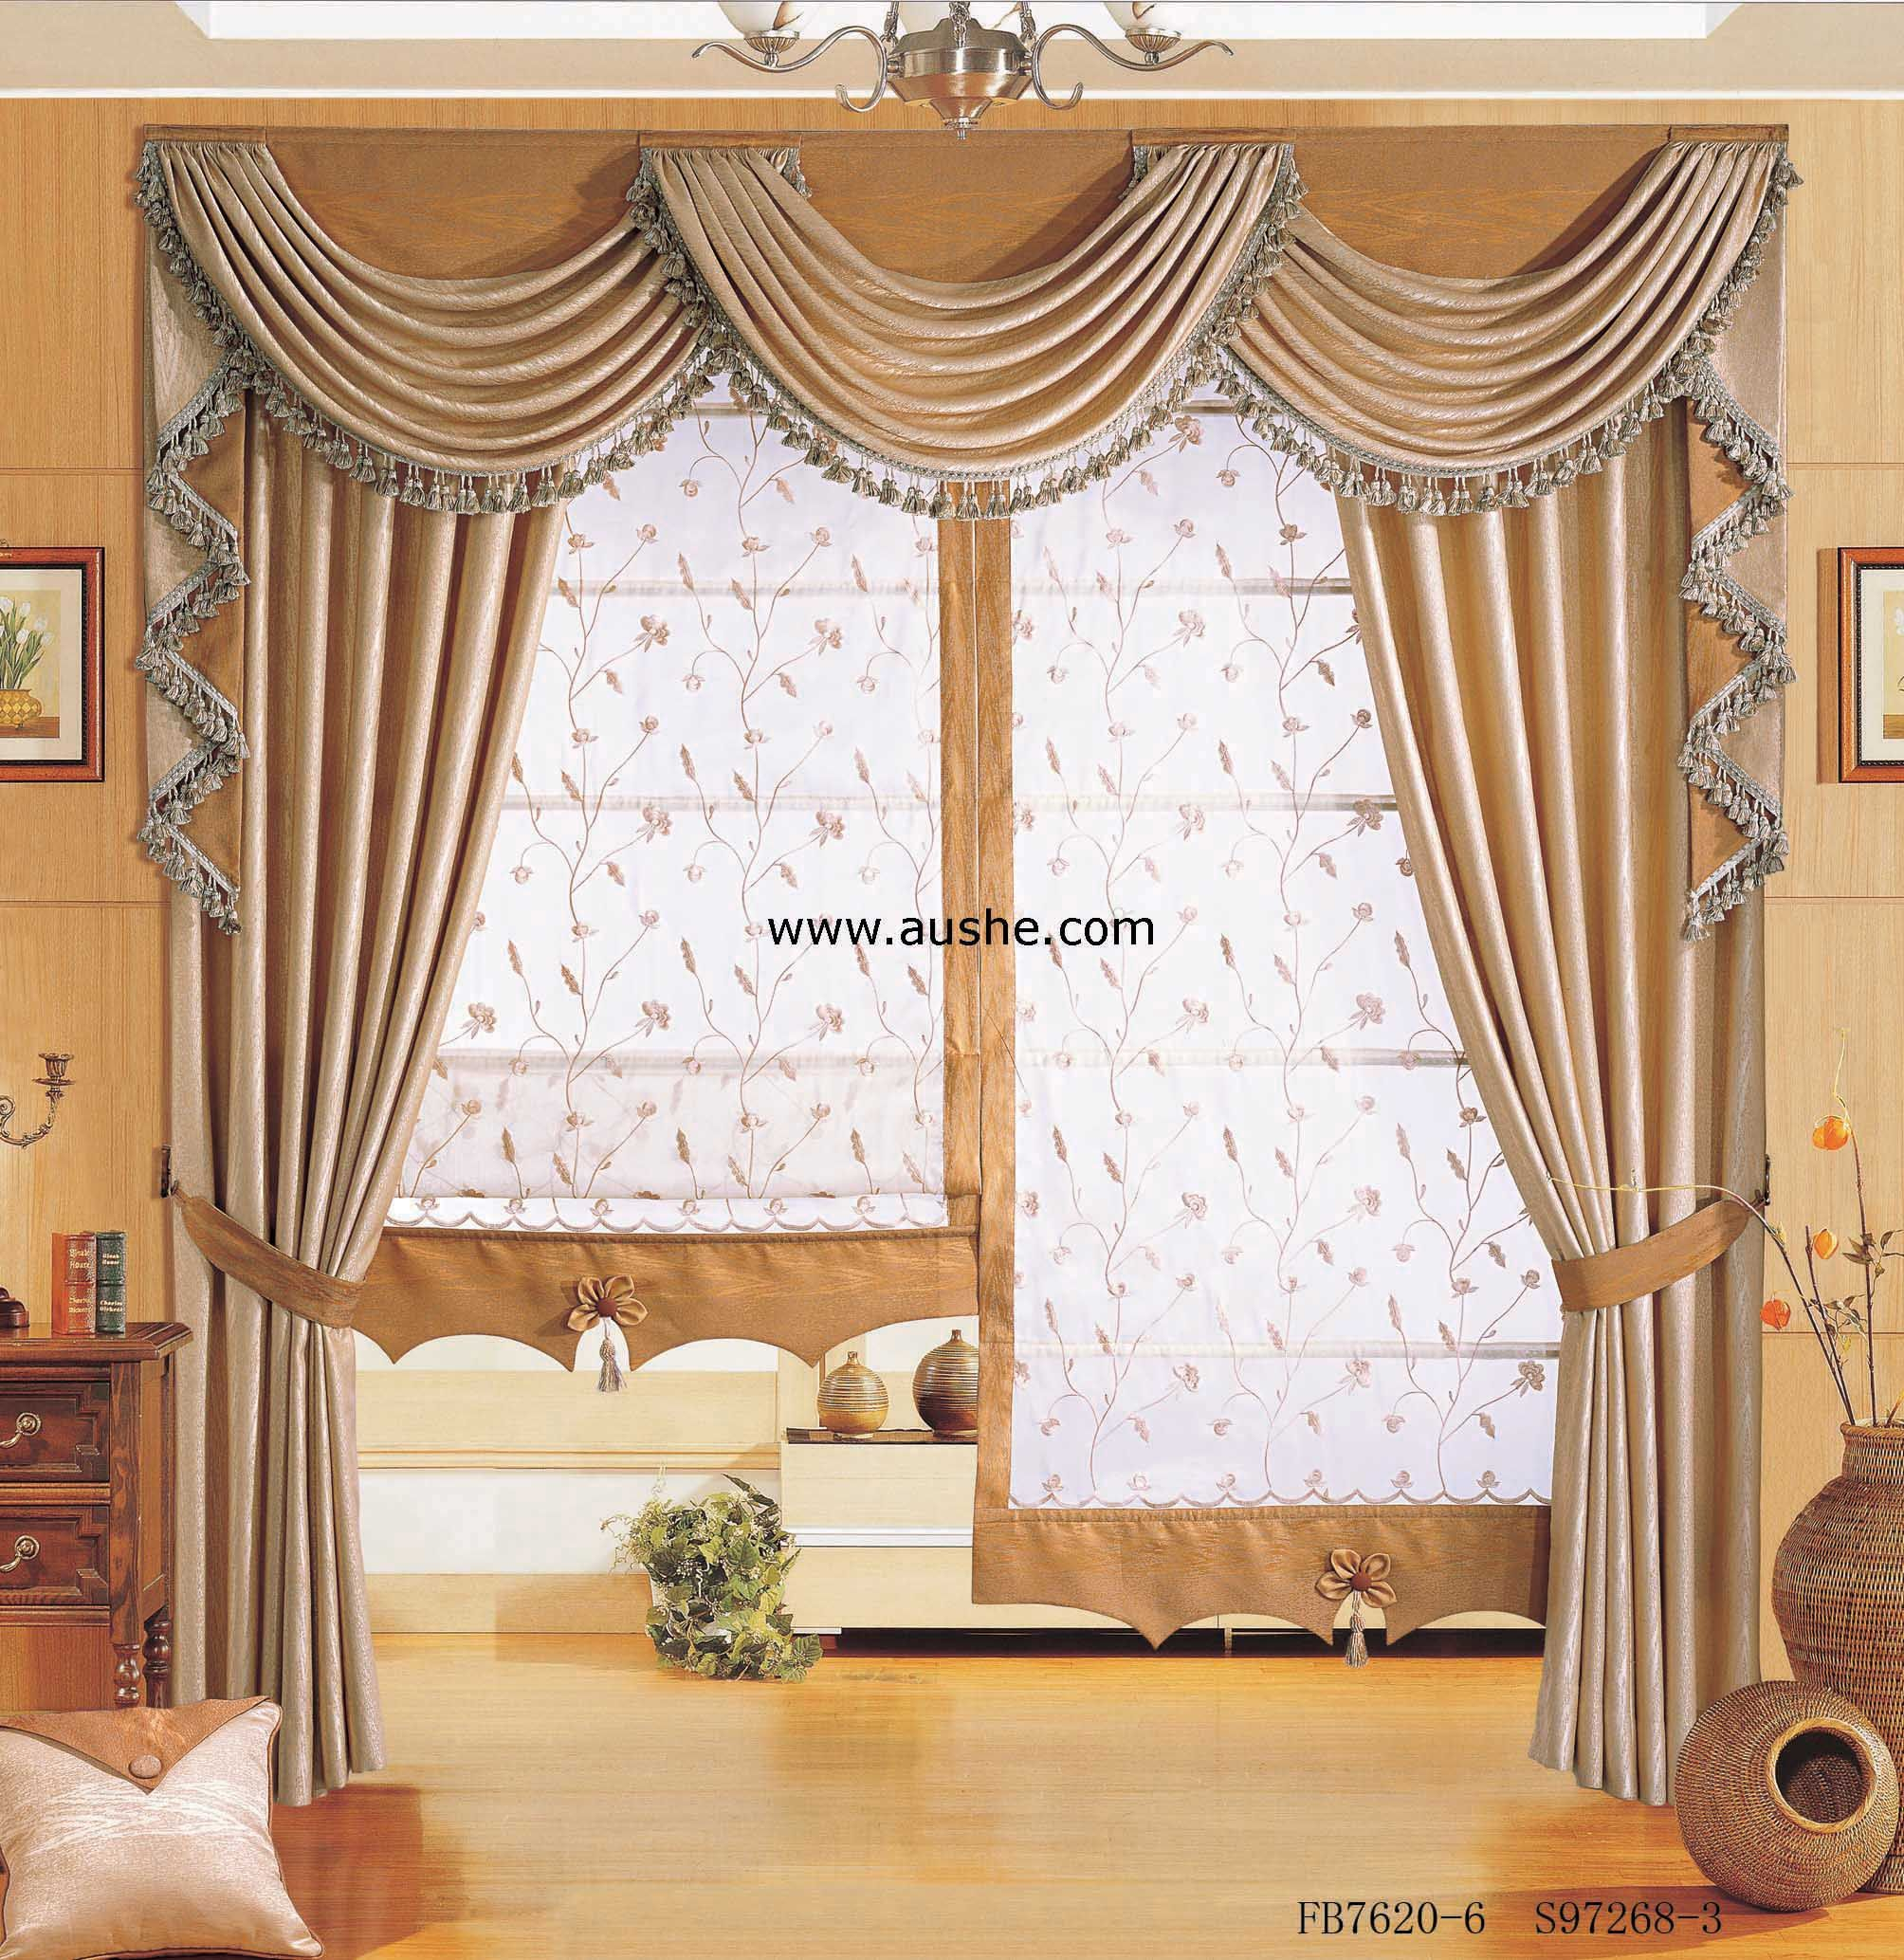 Swag and Cascade over stationary panels  Inspired Drapes  Drapes curtains Curtains White